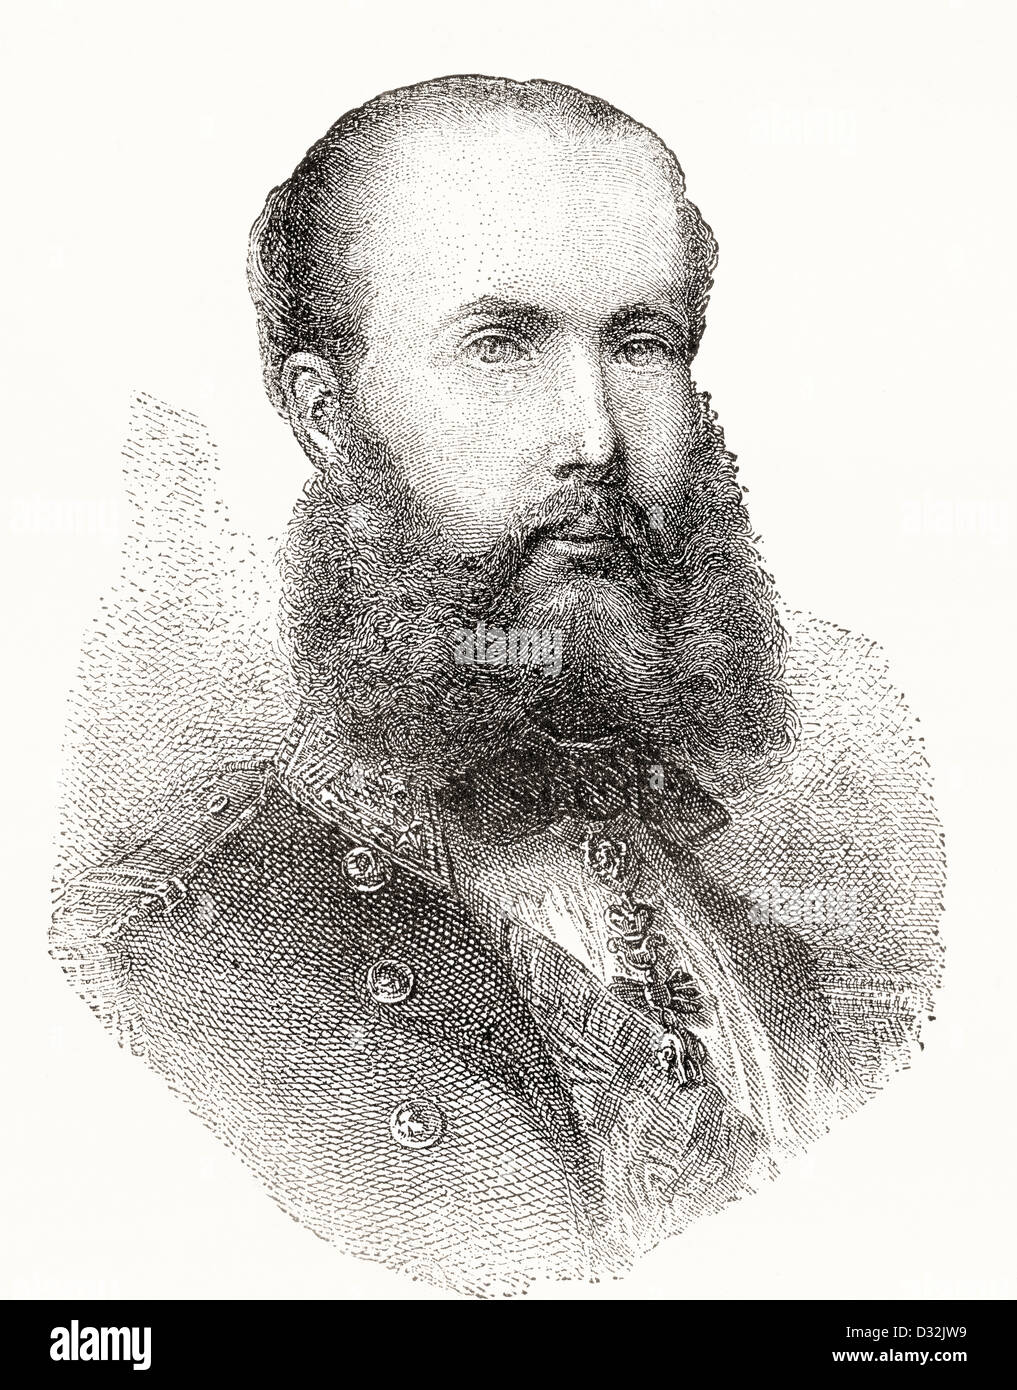 Maximilian I, 1832 –1867. The only monarch of the Second Mexican Empire. - Stock Image